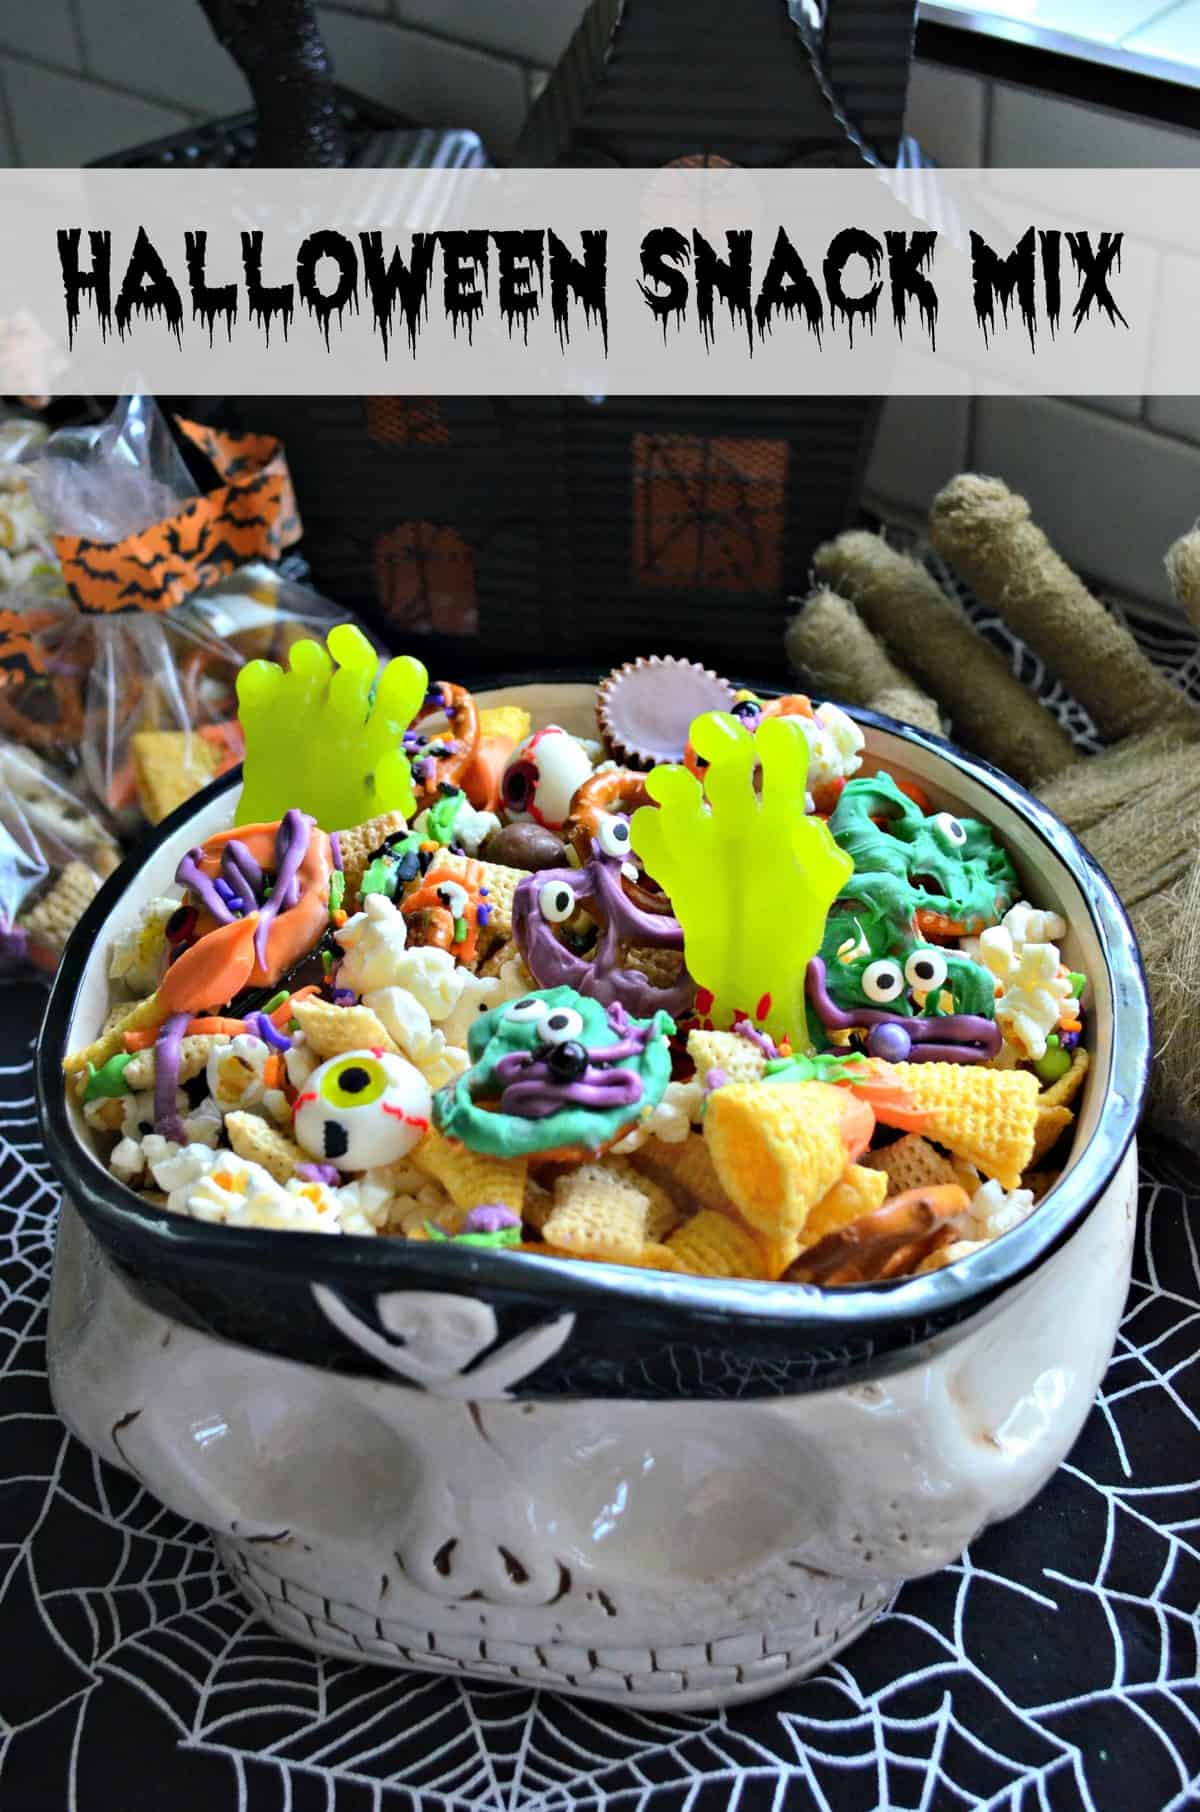 skull bowl of snack mix with colorful chocolate dipped pretzels and candy eyes with title text.